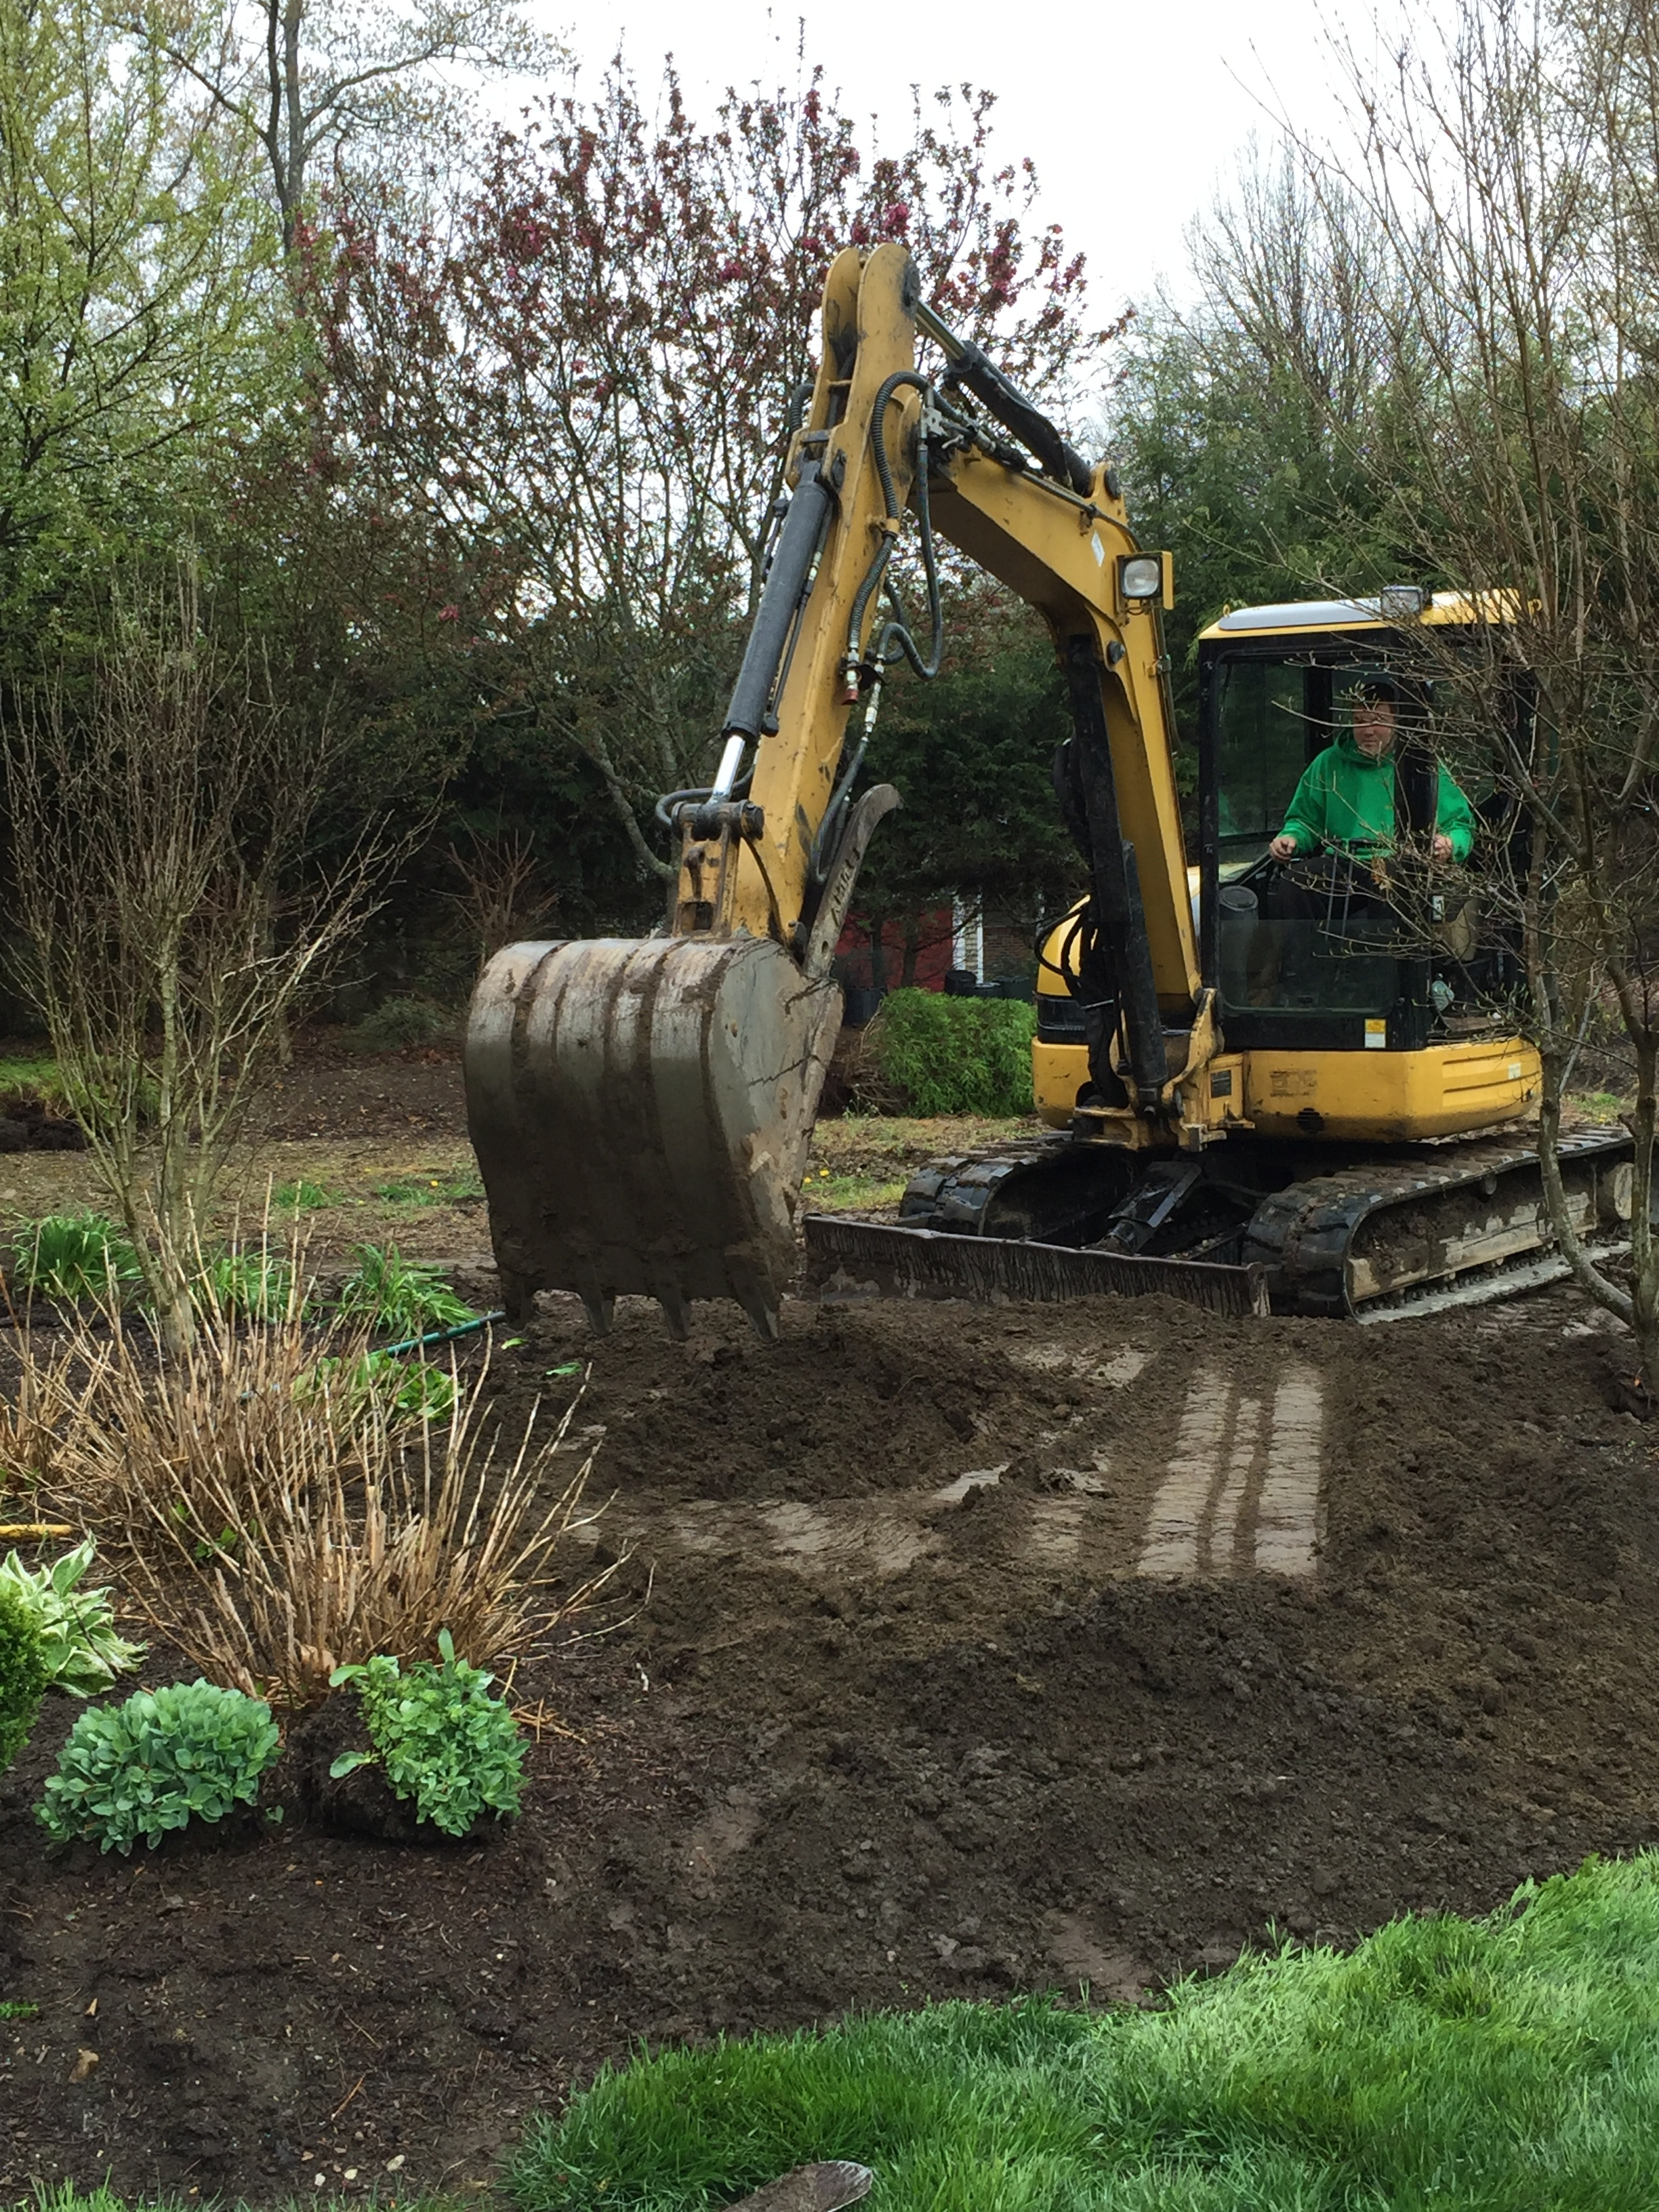 Professional excavation companies in Milford, MA